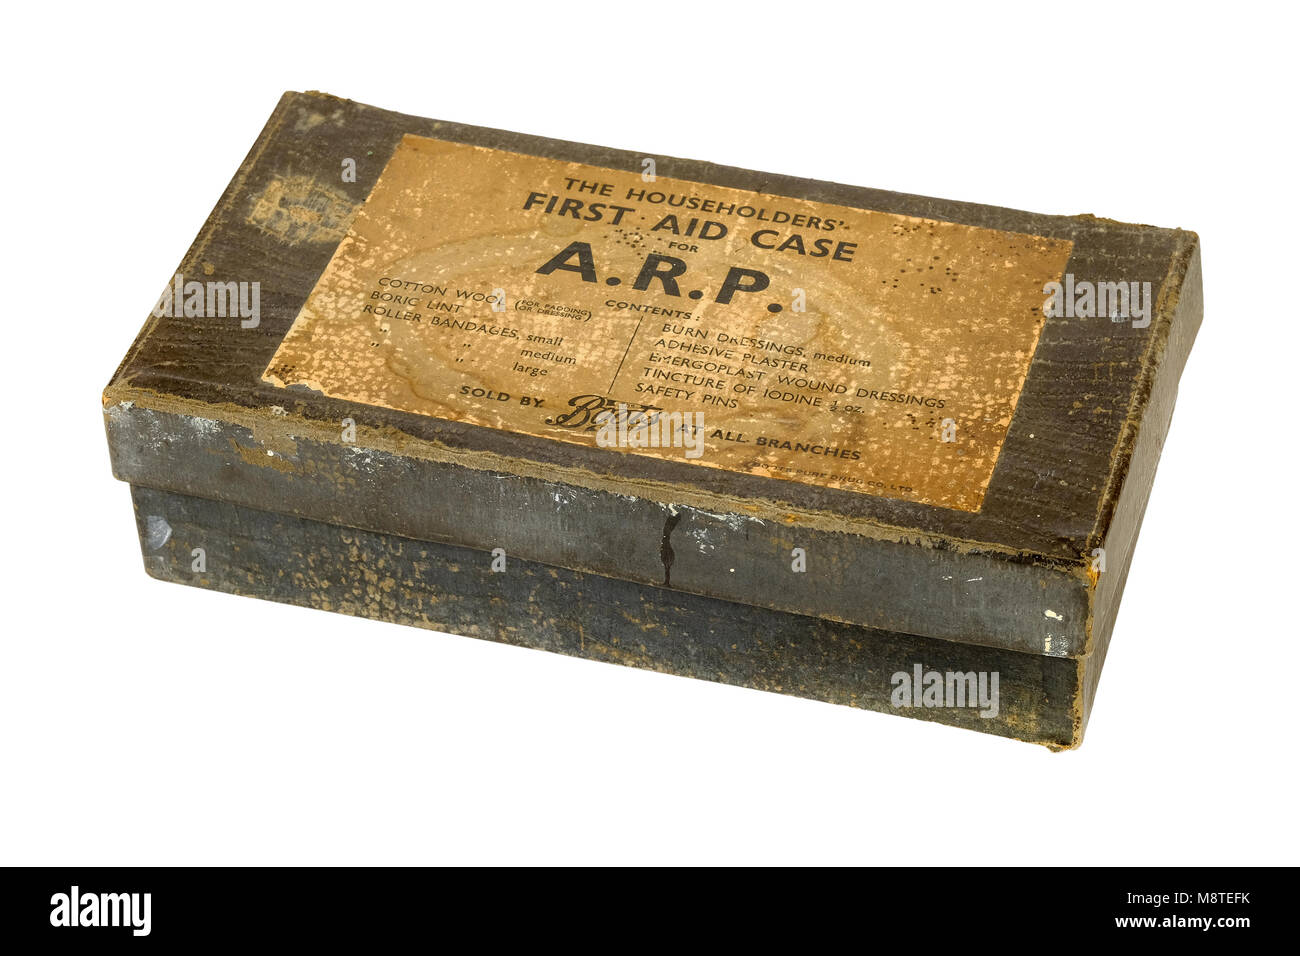 WW2 'The Householders' First Aid Case for ARP' (Air Raid Precaution), sold by all Boots branches - Stock Image